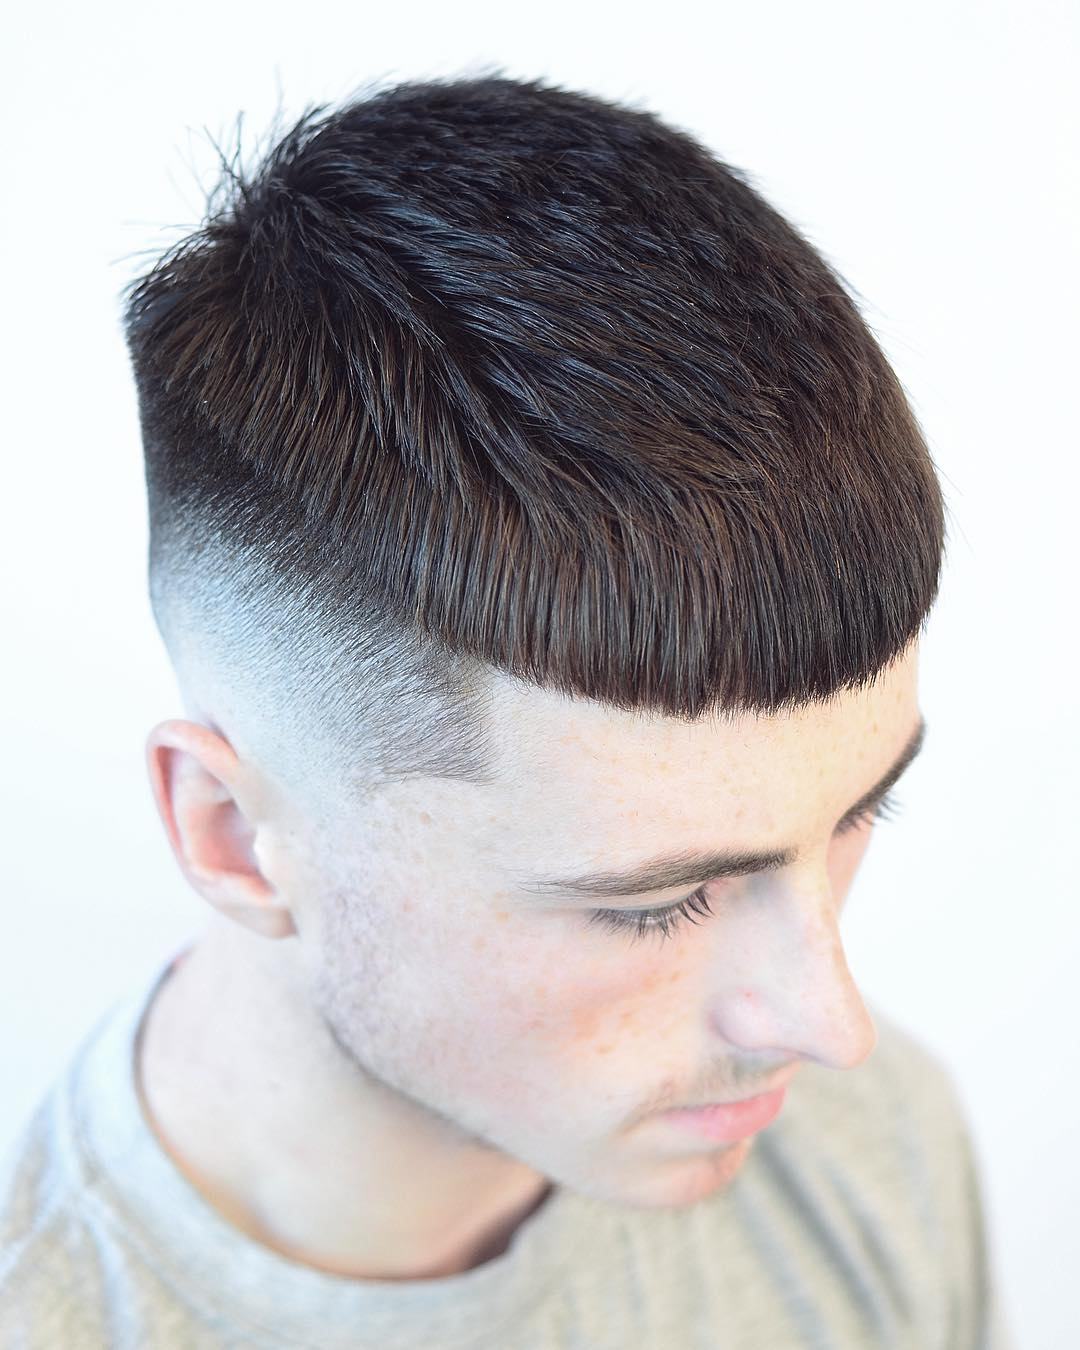 New Hairstyles For Men 2018 -> Men\'s Hairstyle Trends